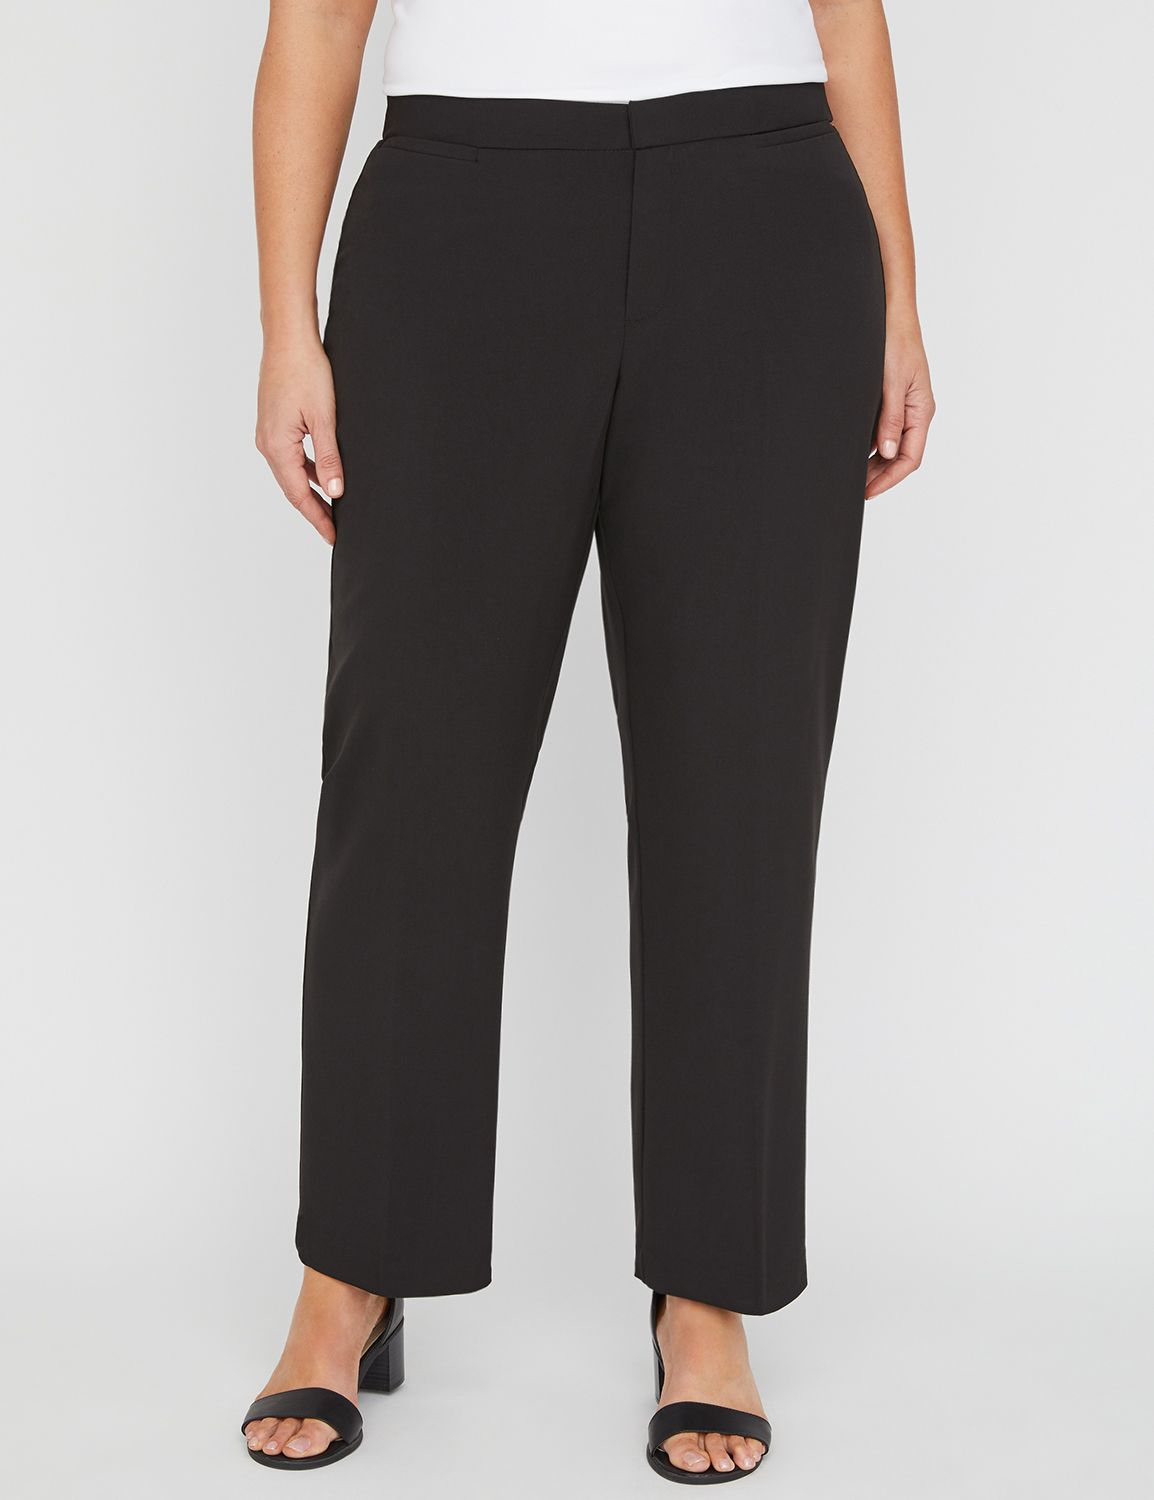 Right Fit Pant (Moderately Curvy) Right Fit Pant (Moderately Curvy) MP-300009893